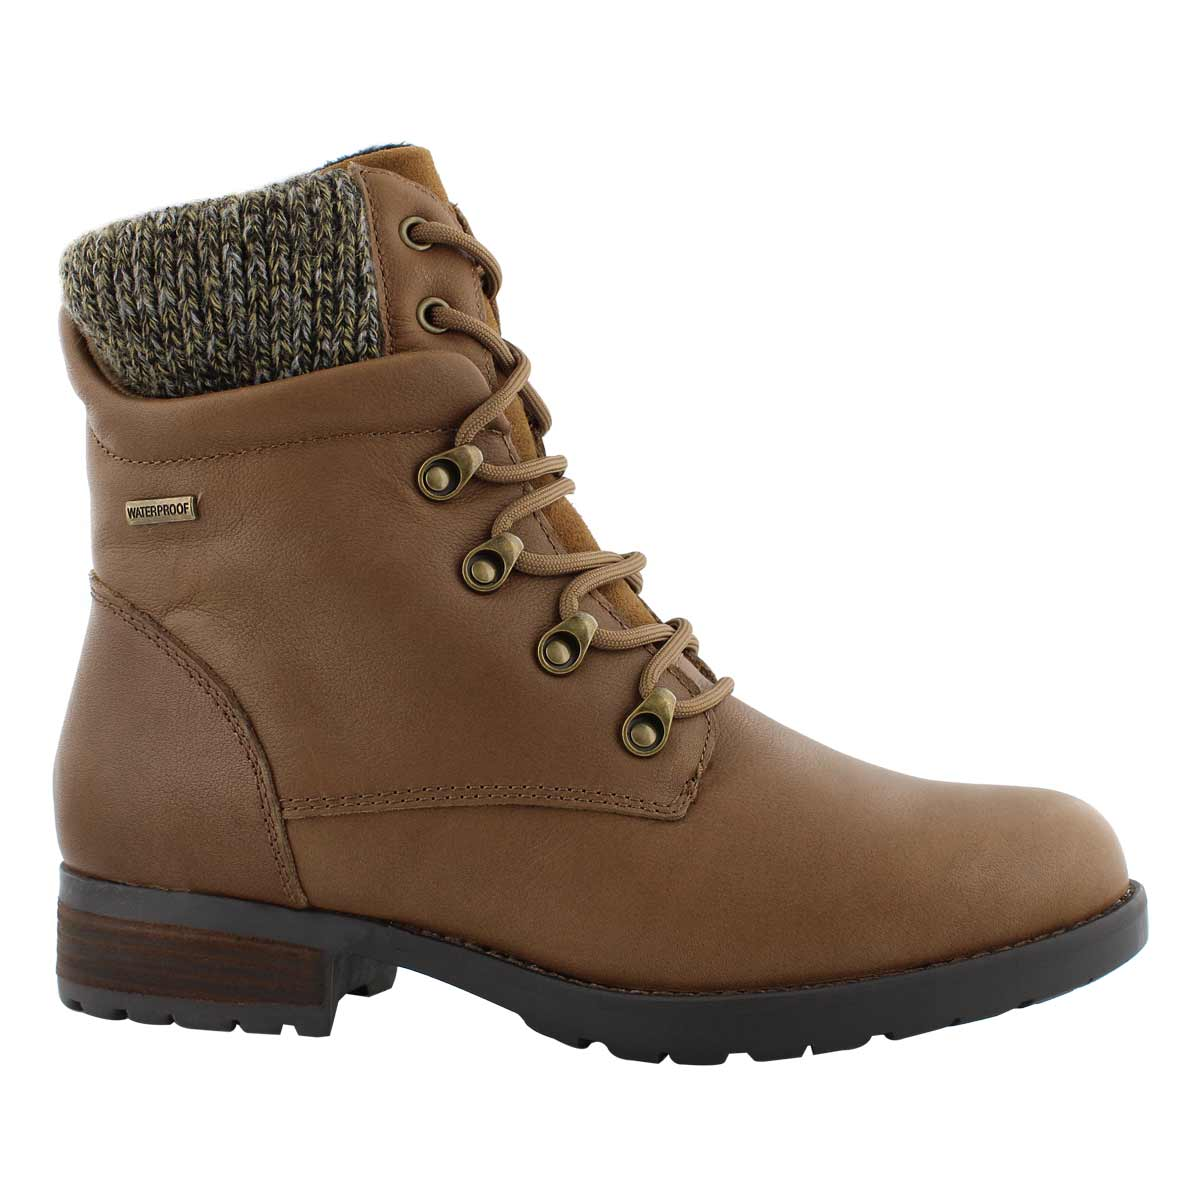 Lds Derry taupe wtpf winter boot